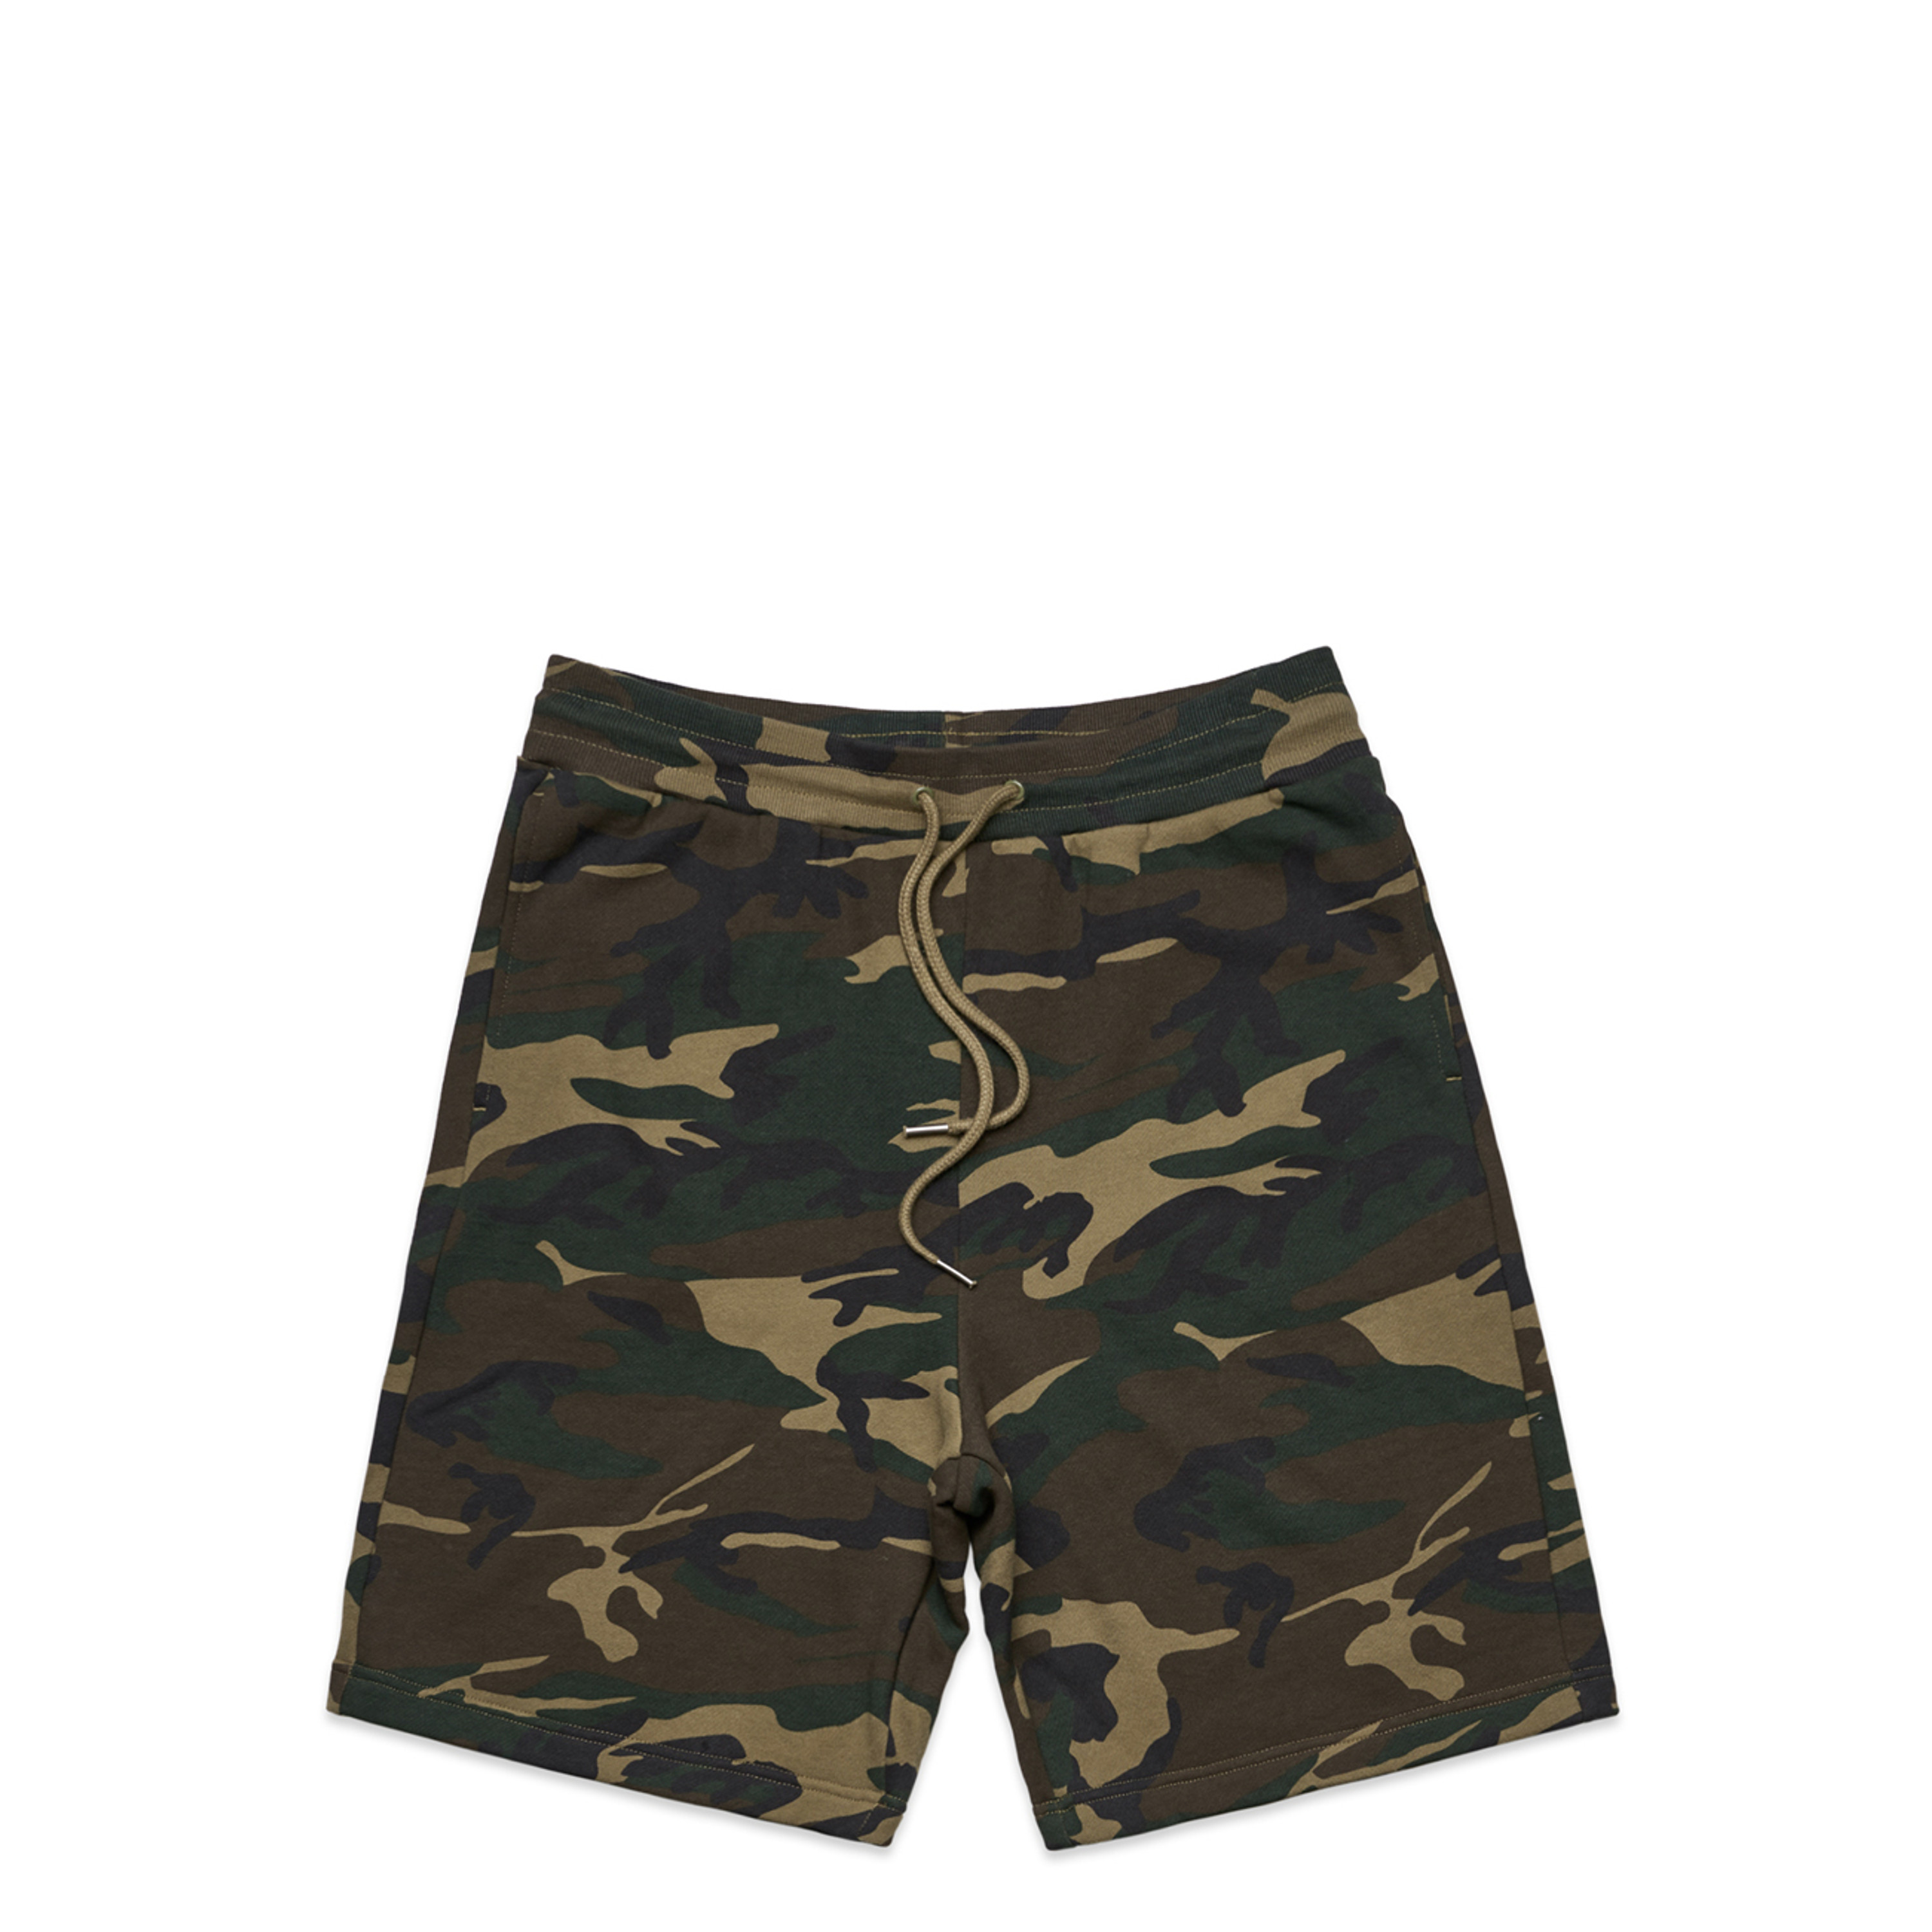 MENS STADIUM CAMO SHORTS - 5916C